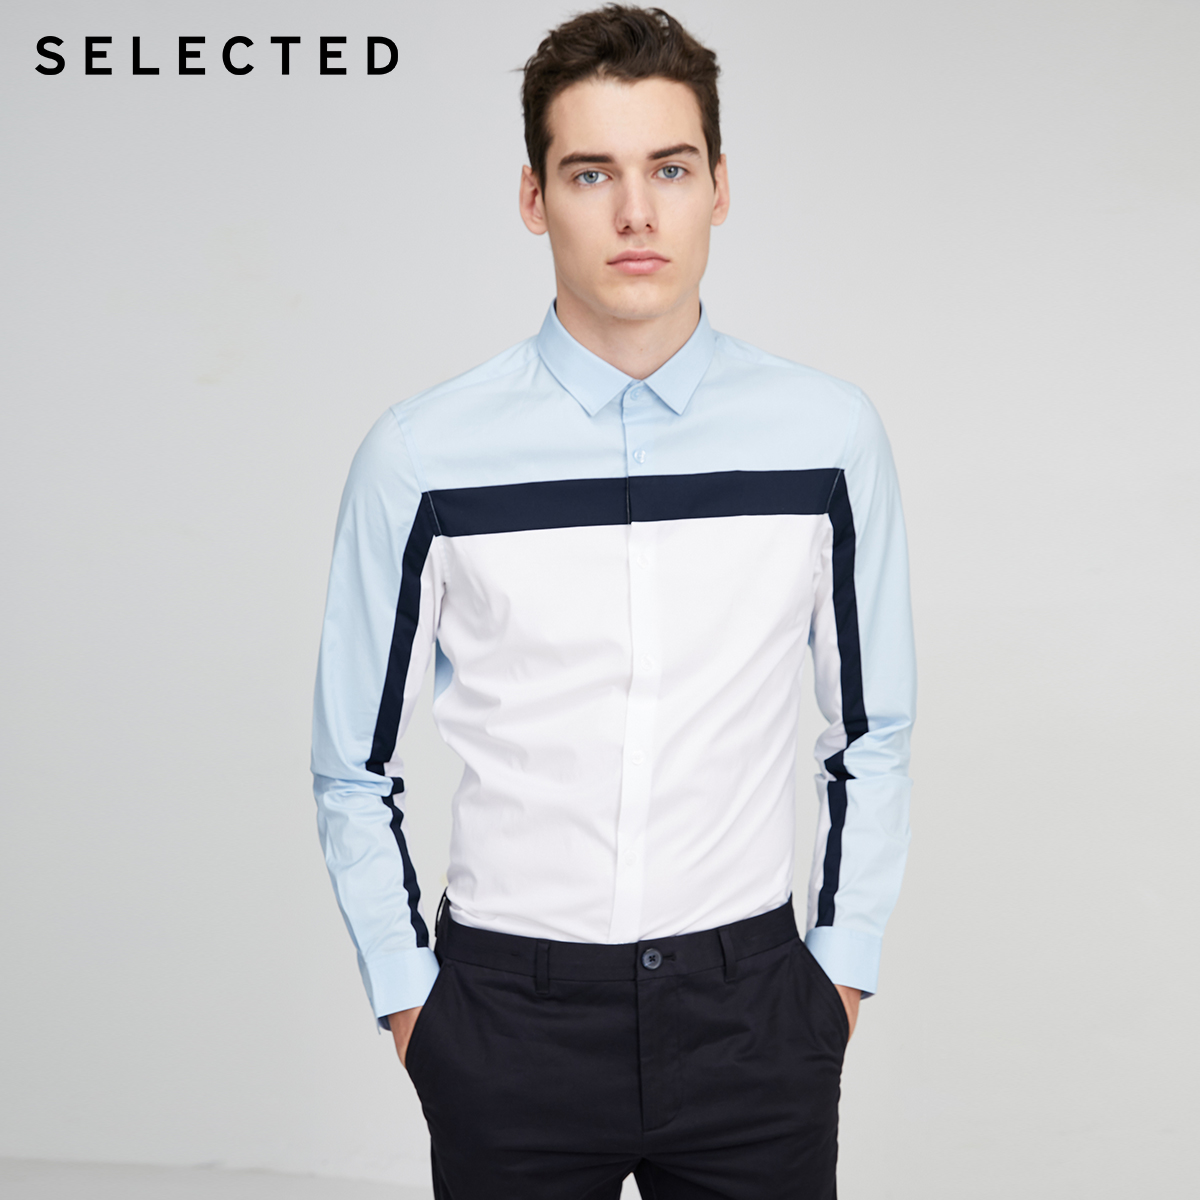 SELECTED Men's Slim Fit Assorted Colors Striped Long-sleeved Shirt S|420105511